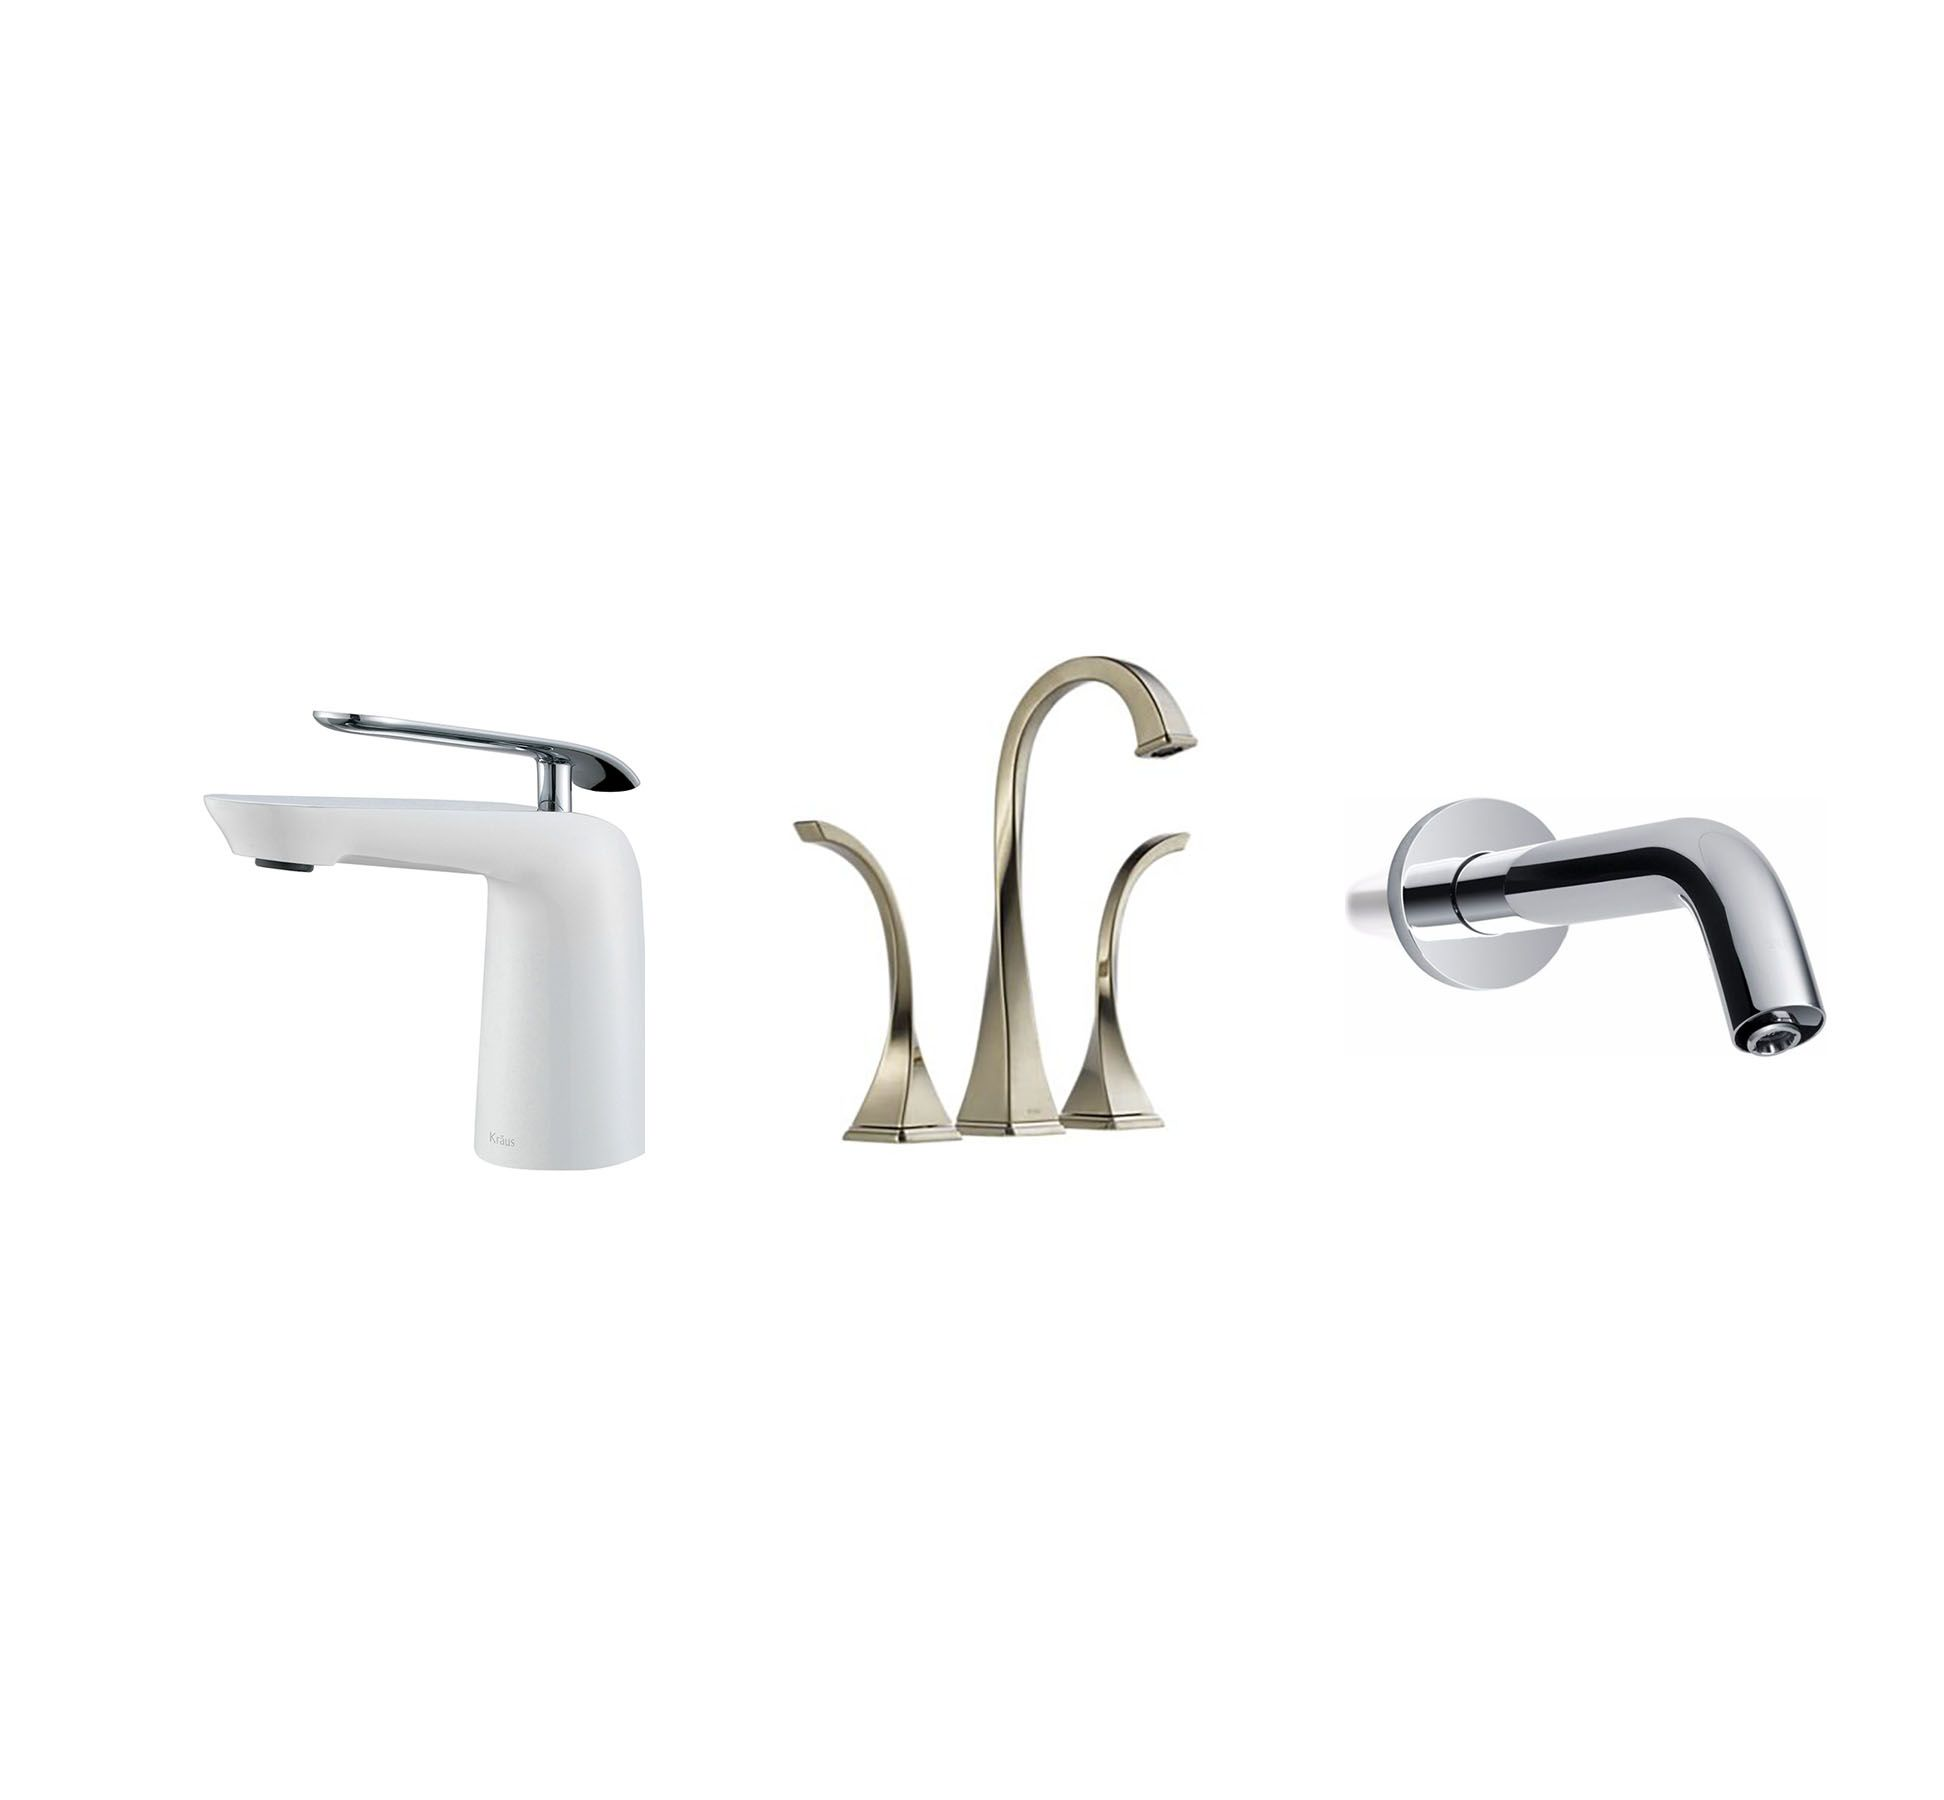 20 best bathroom faucets stylish bathtub and bathroom sink faucets to buy